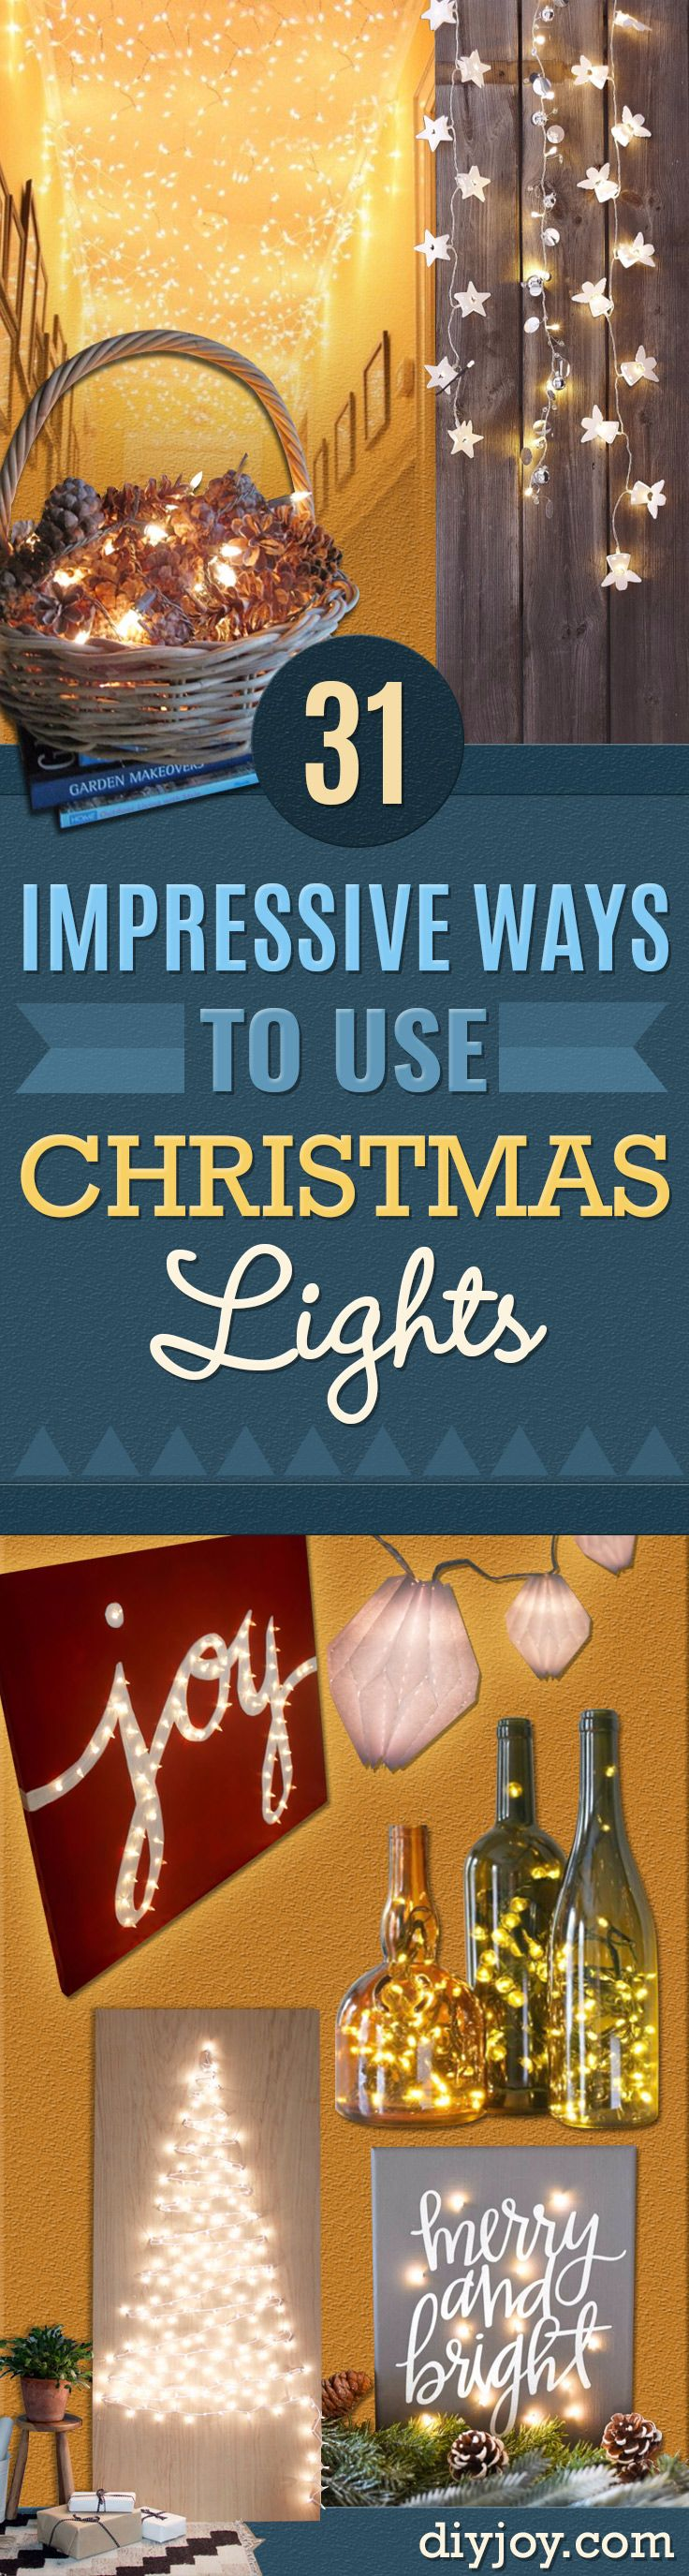 Cool Ways To Use Christmas Lights - Best Easy DIY Ideas for String Lights for Room Decoration, Home Decor and Creative DIY Bedroom Lighting - Creative Christmas Light Tutorials with Step by Step Instructions - Creative Crafts and DIY Projects for Teens and Adults http://diyjoy.com/cool-ways-to-use-christmas-lights